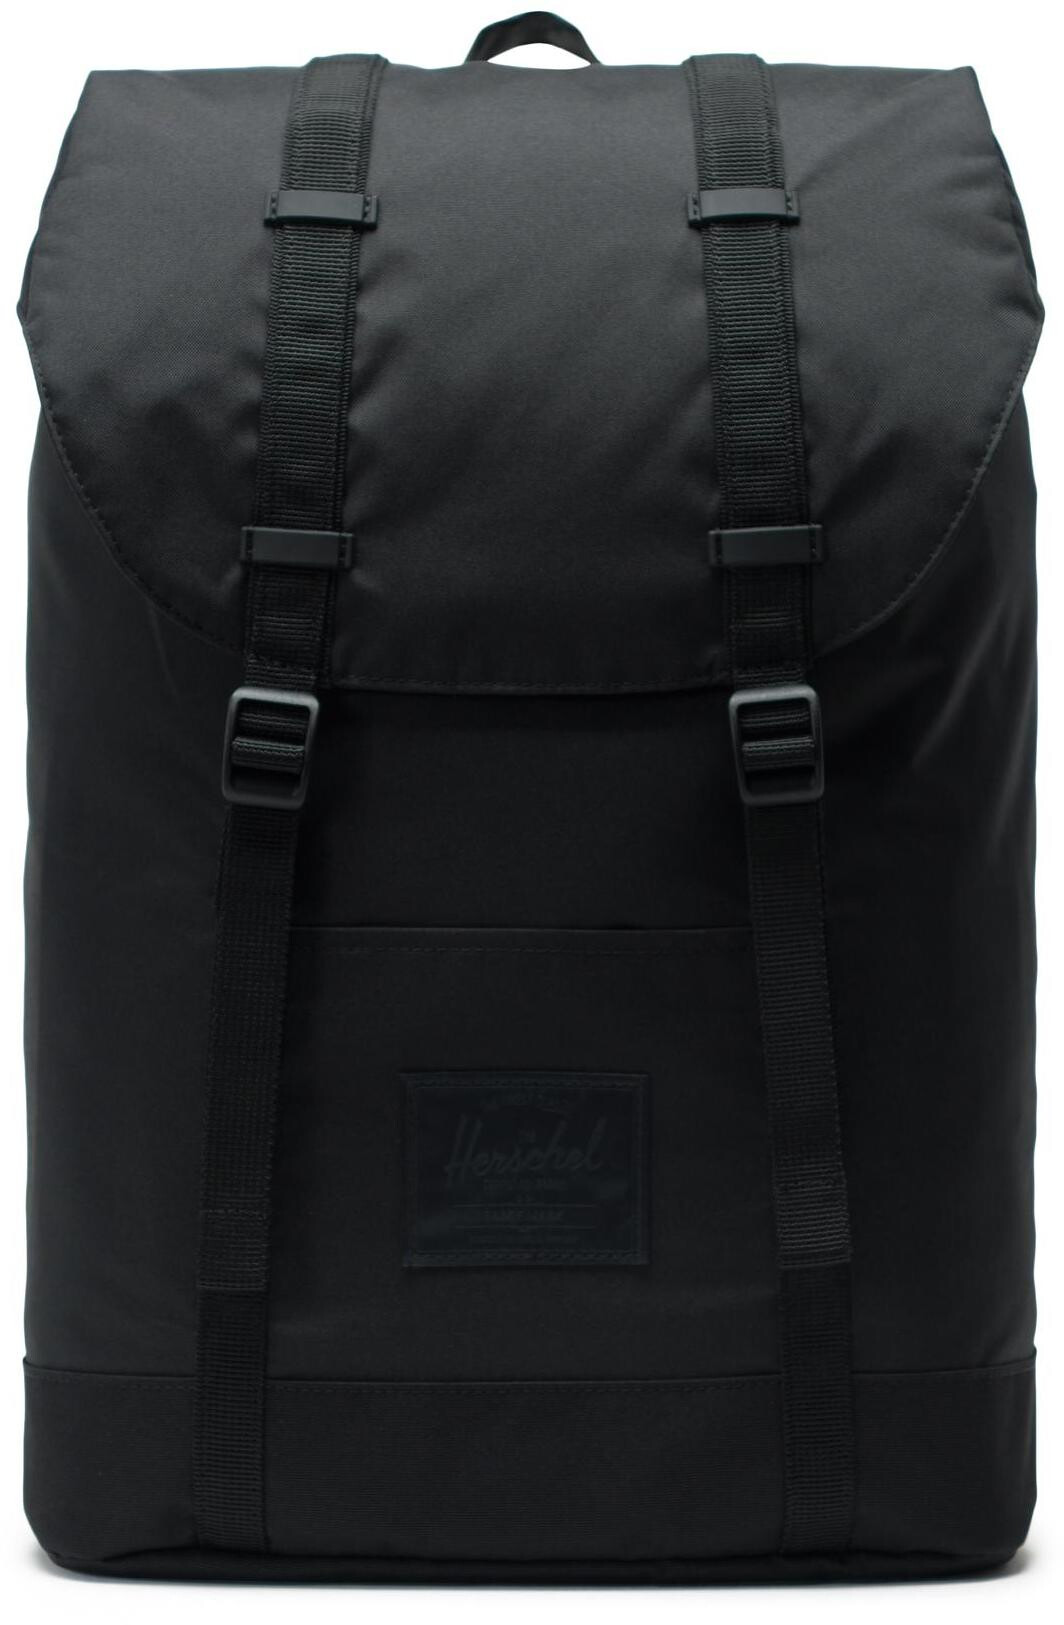 Herschel Retreat Light Rygsæk, black (2019) | Travel bags